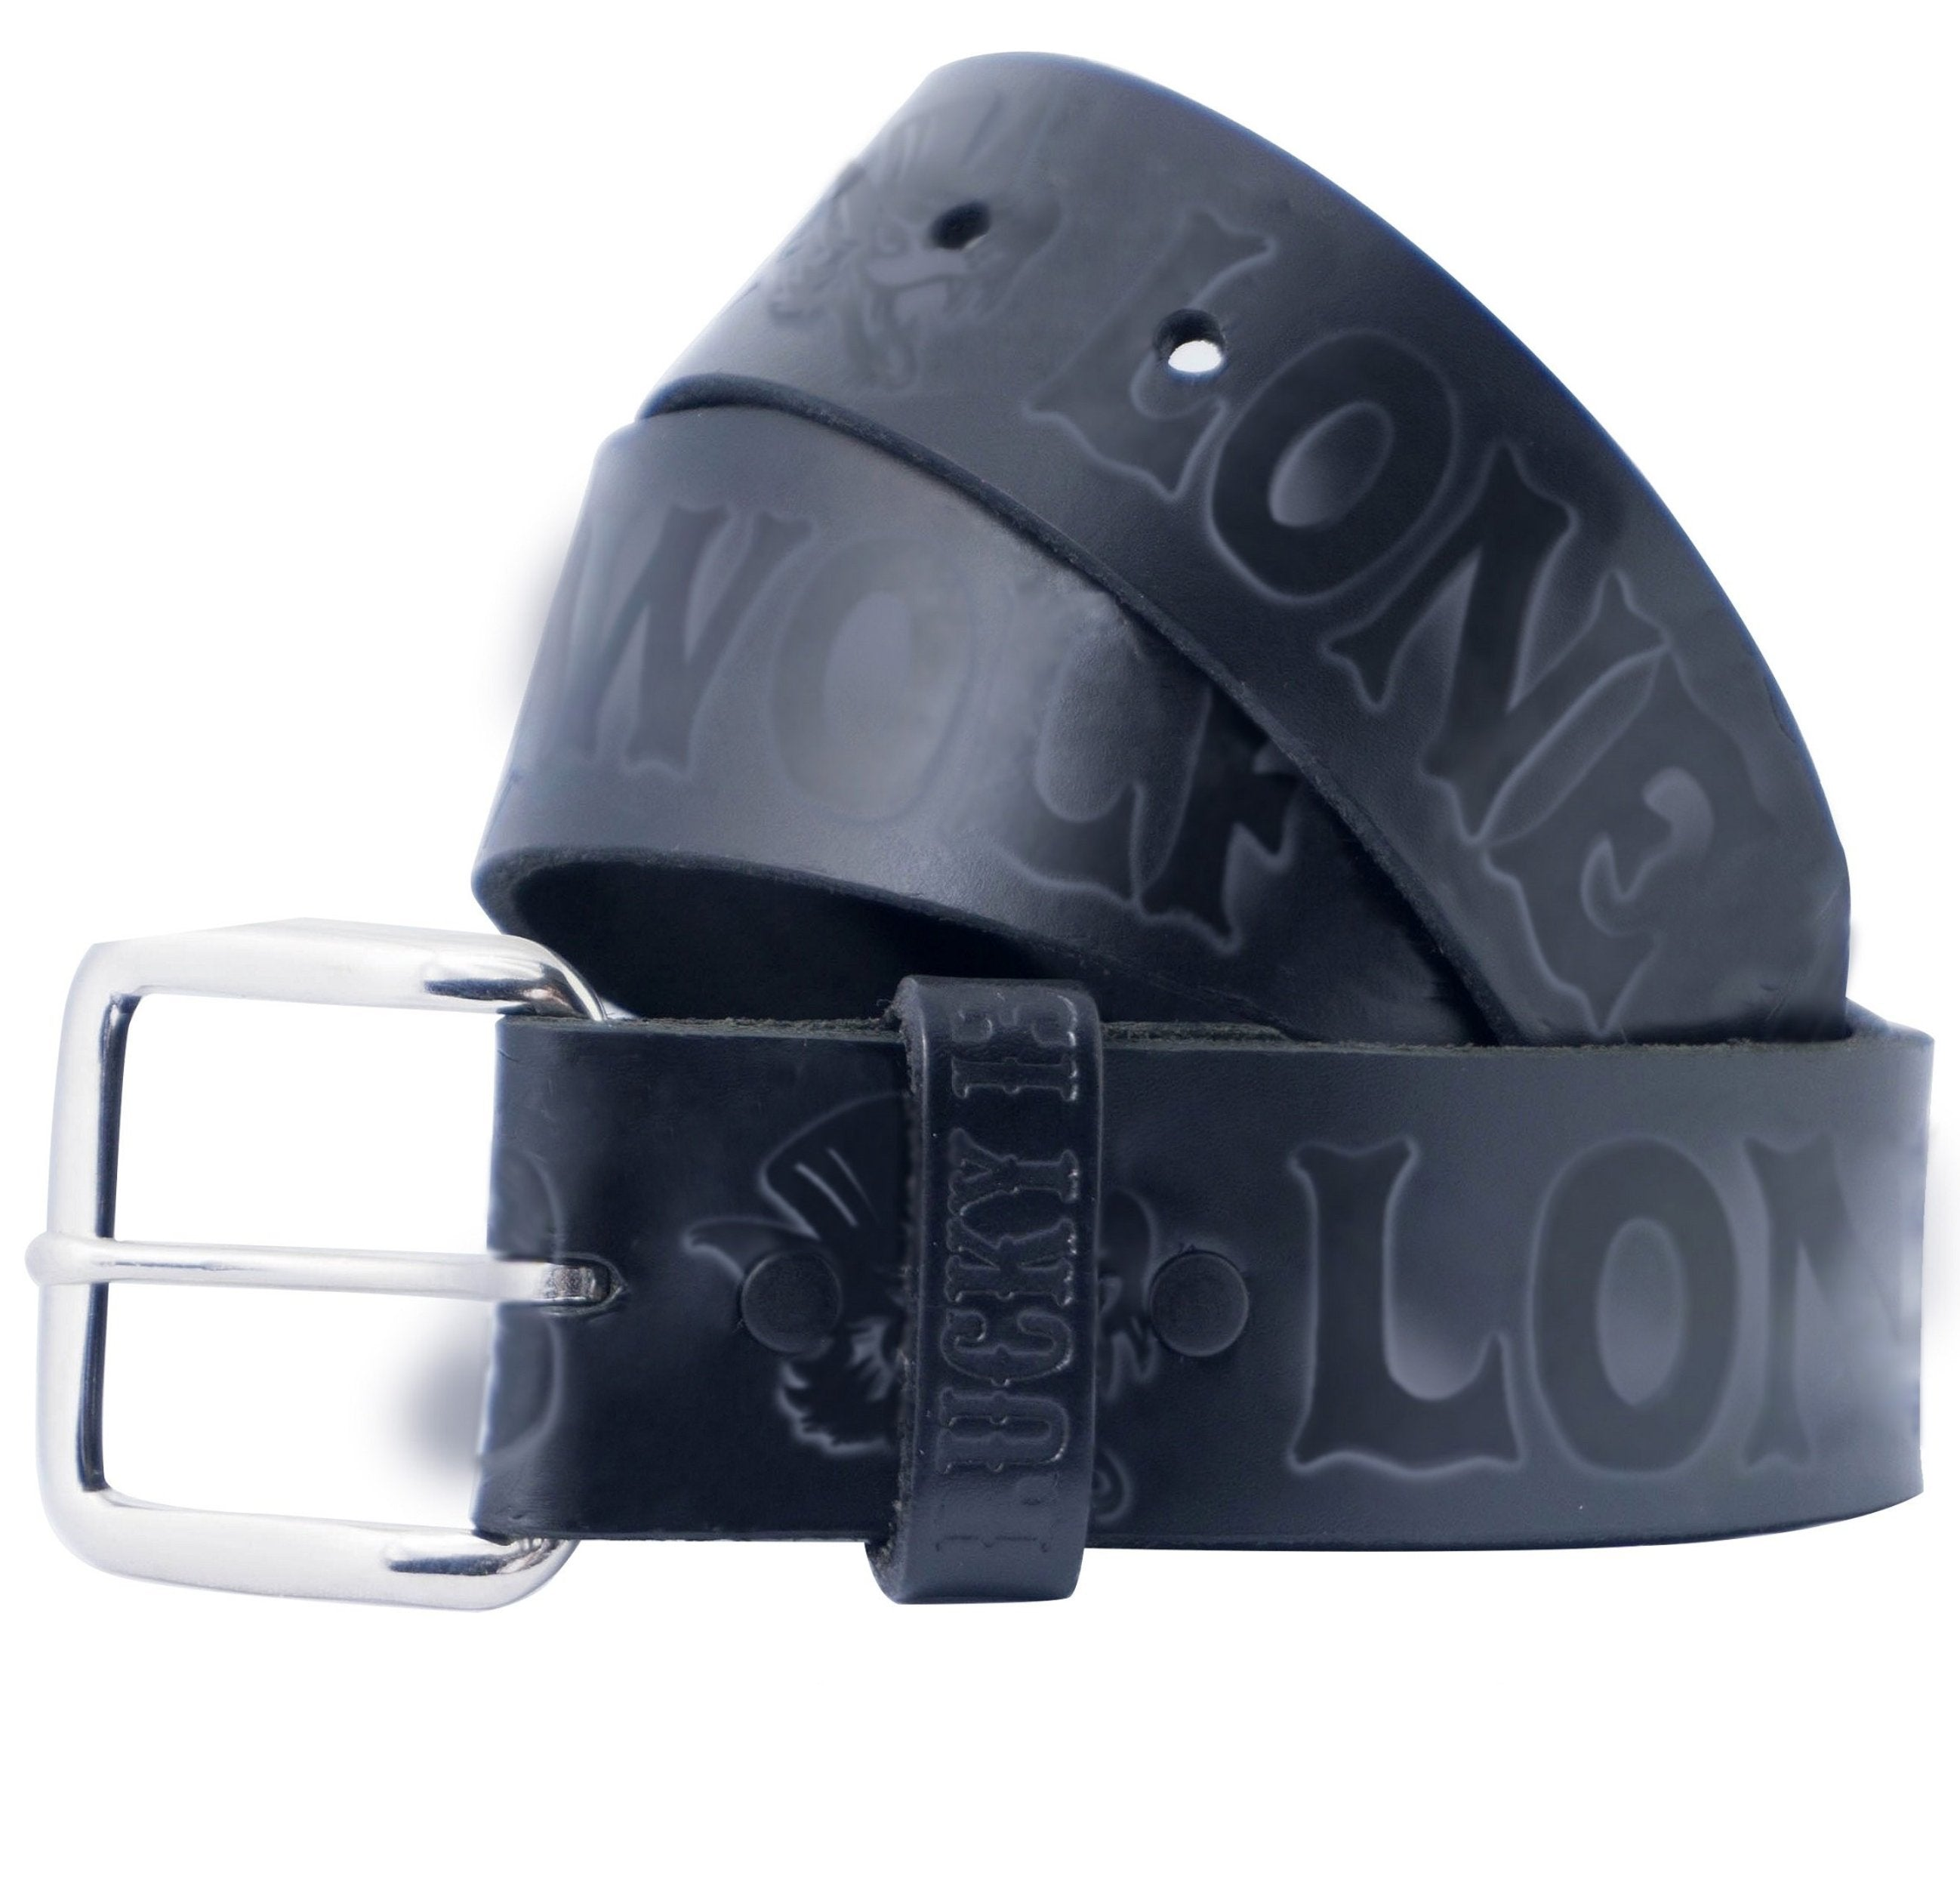 The NO CLUB Belt - BLACK